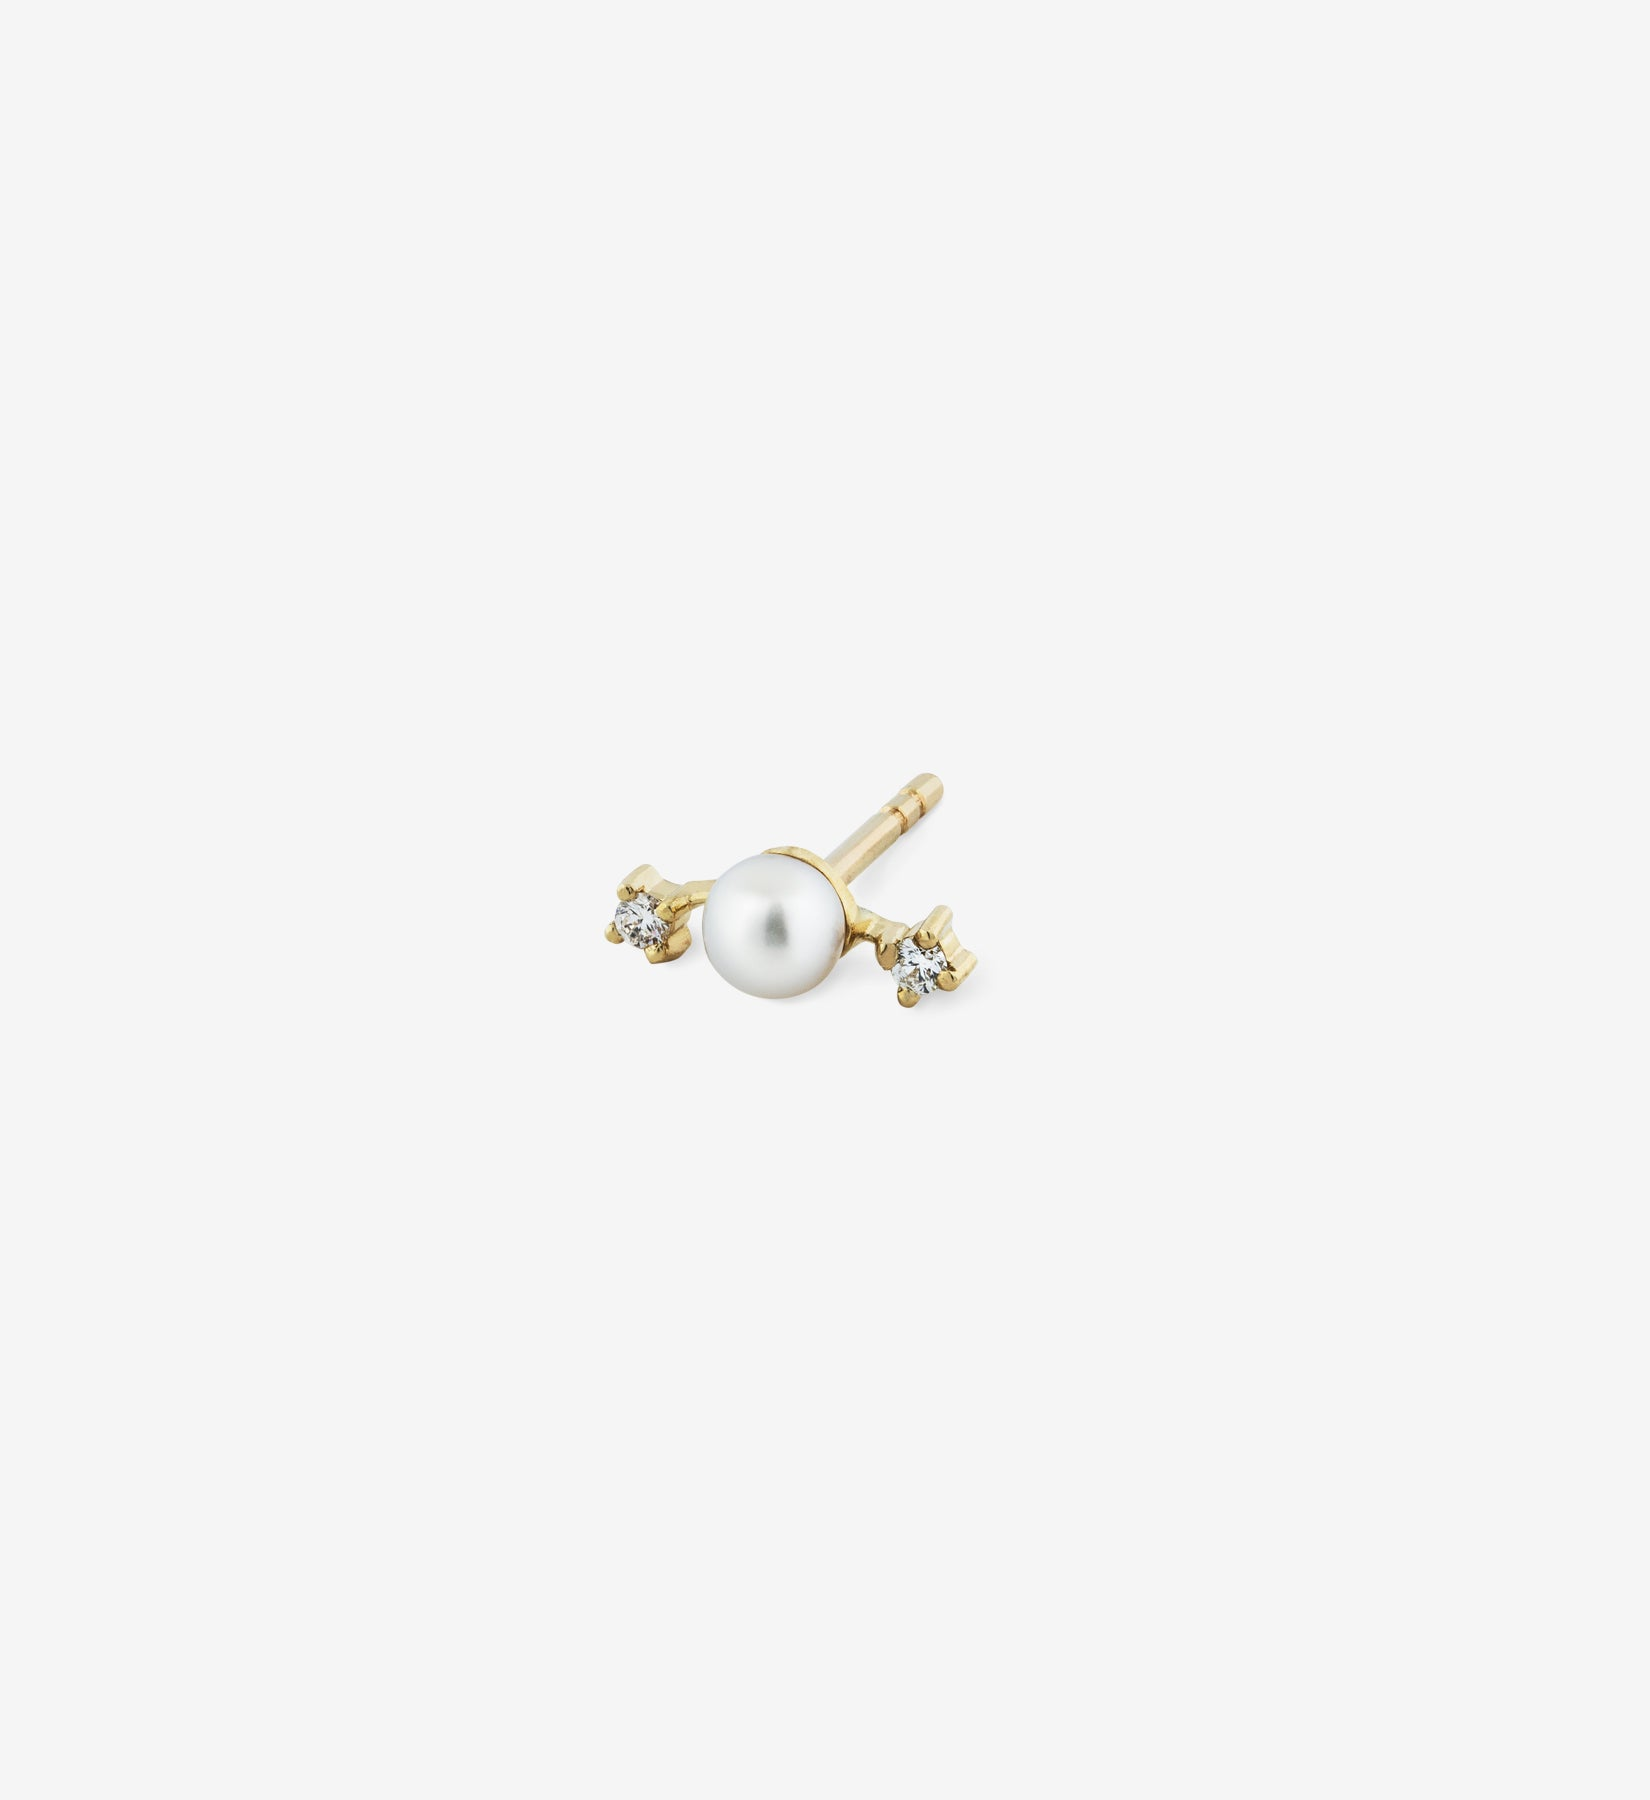 Double Diamond Pearl Stud 04 - Single